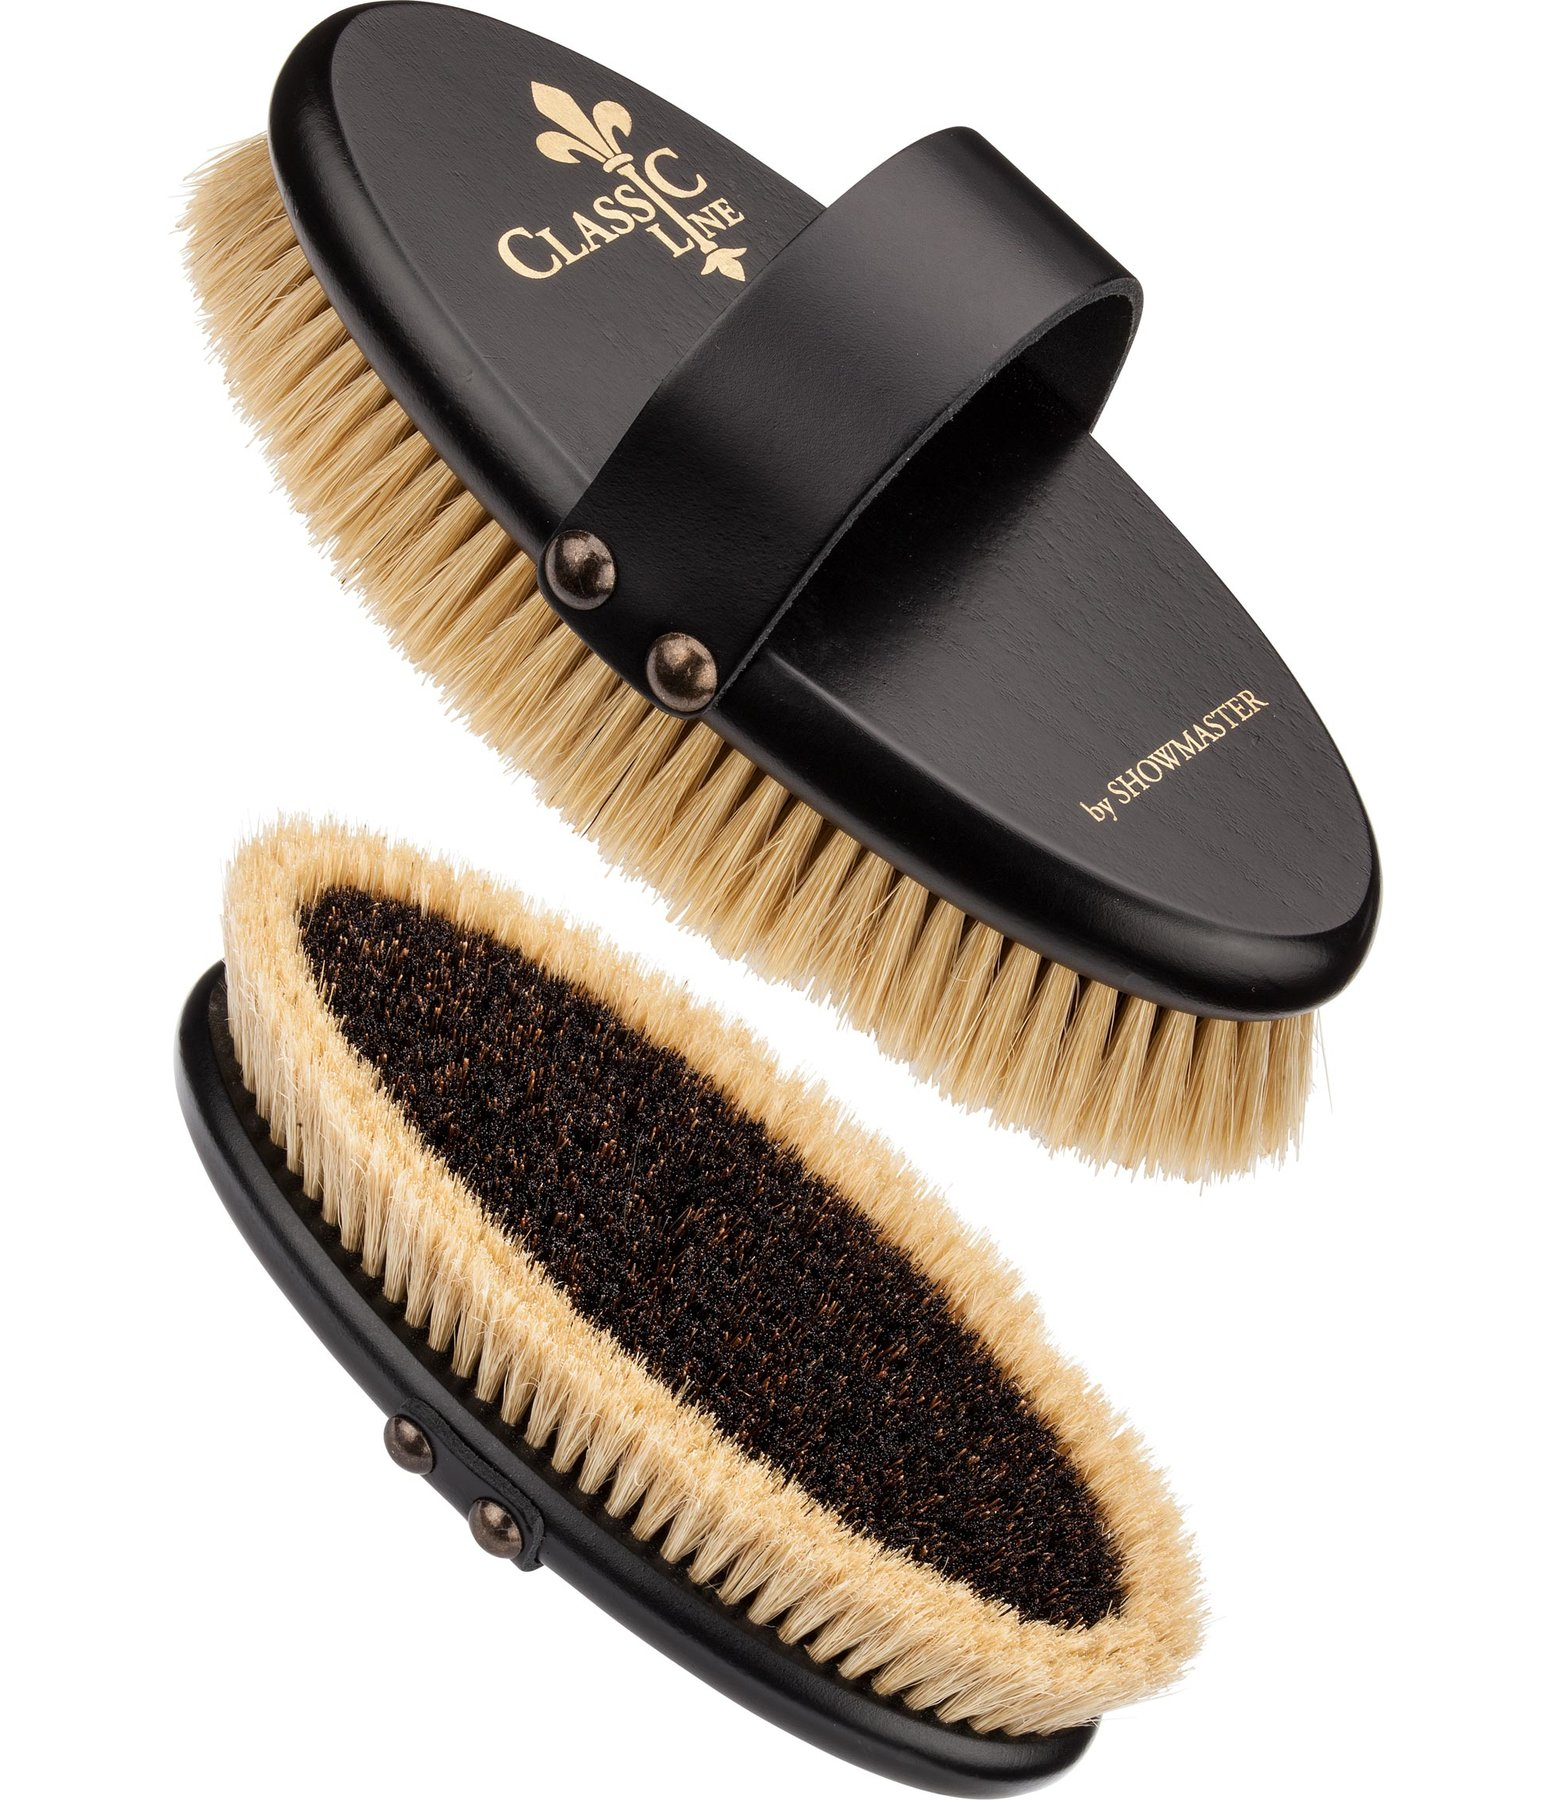 CLASSIC LINE Body Brush with High Edge